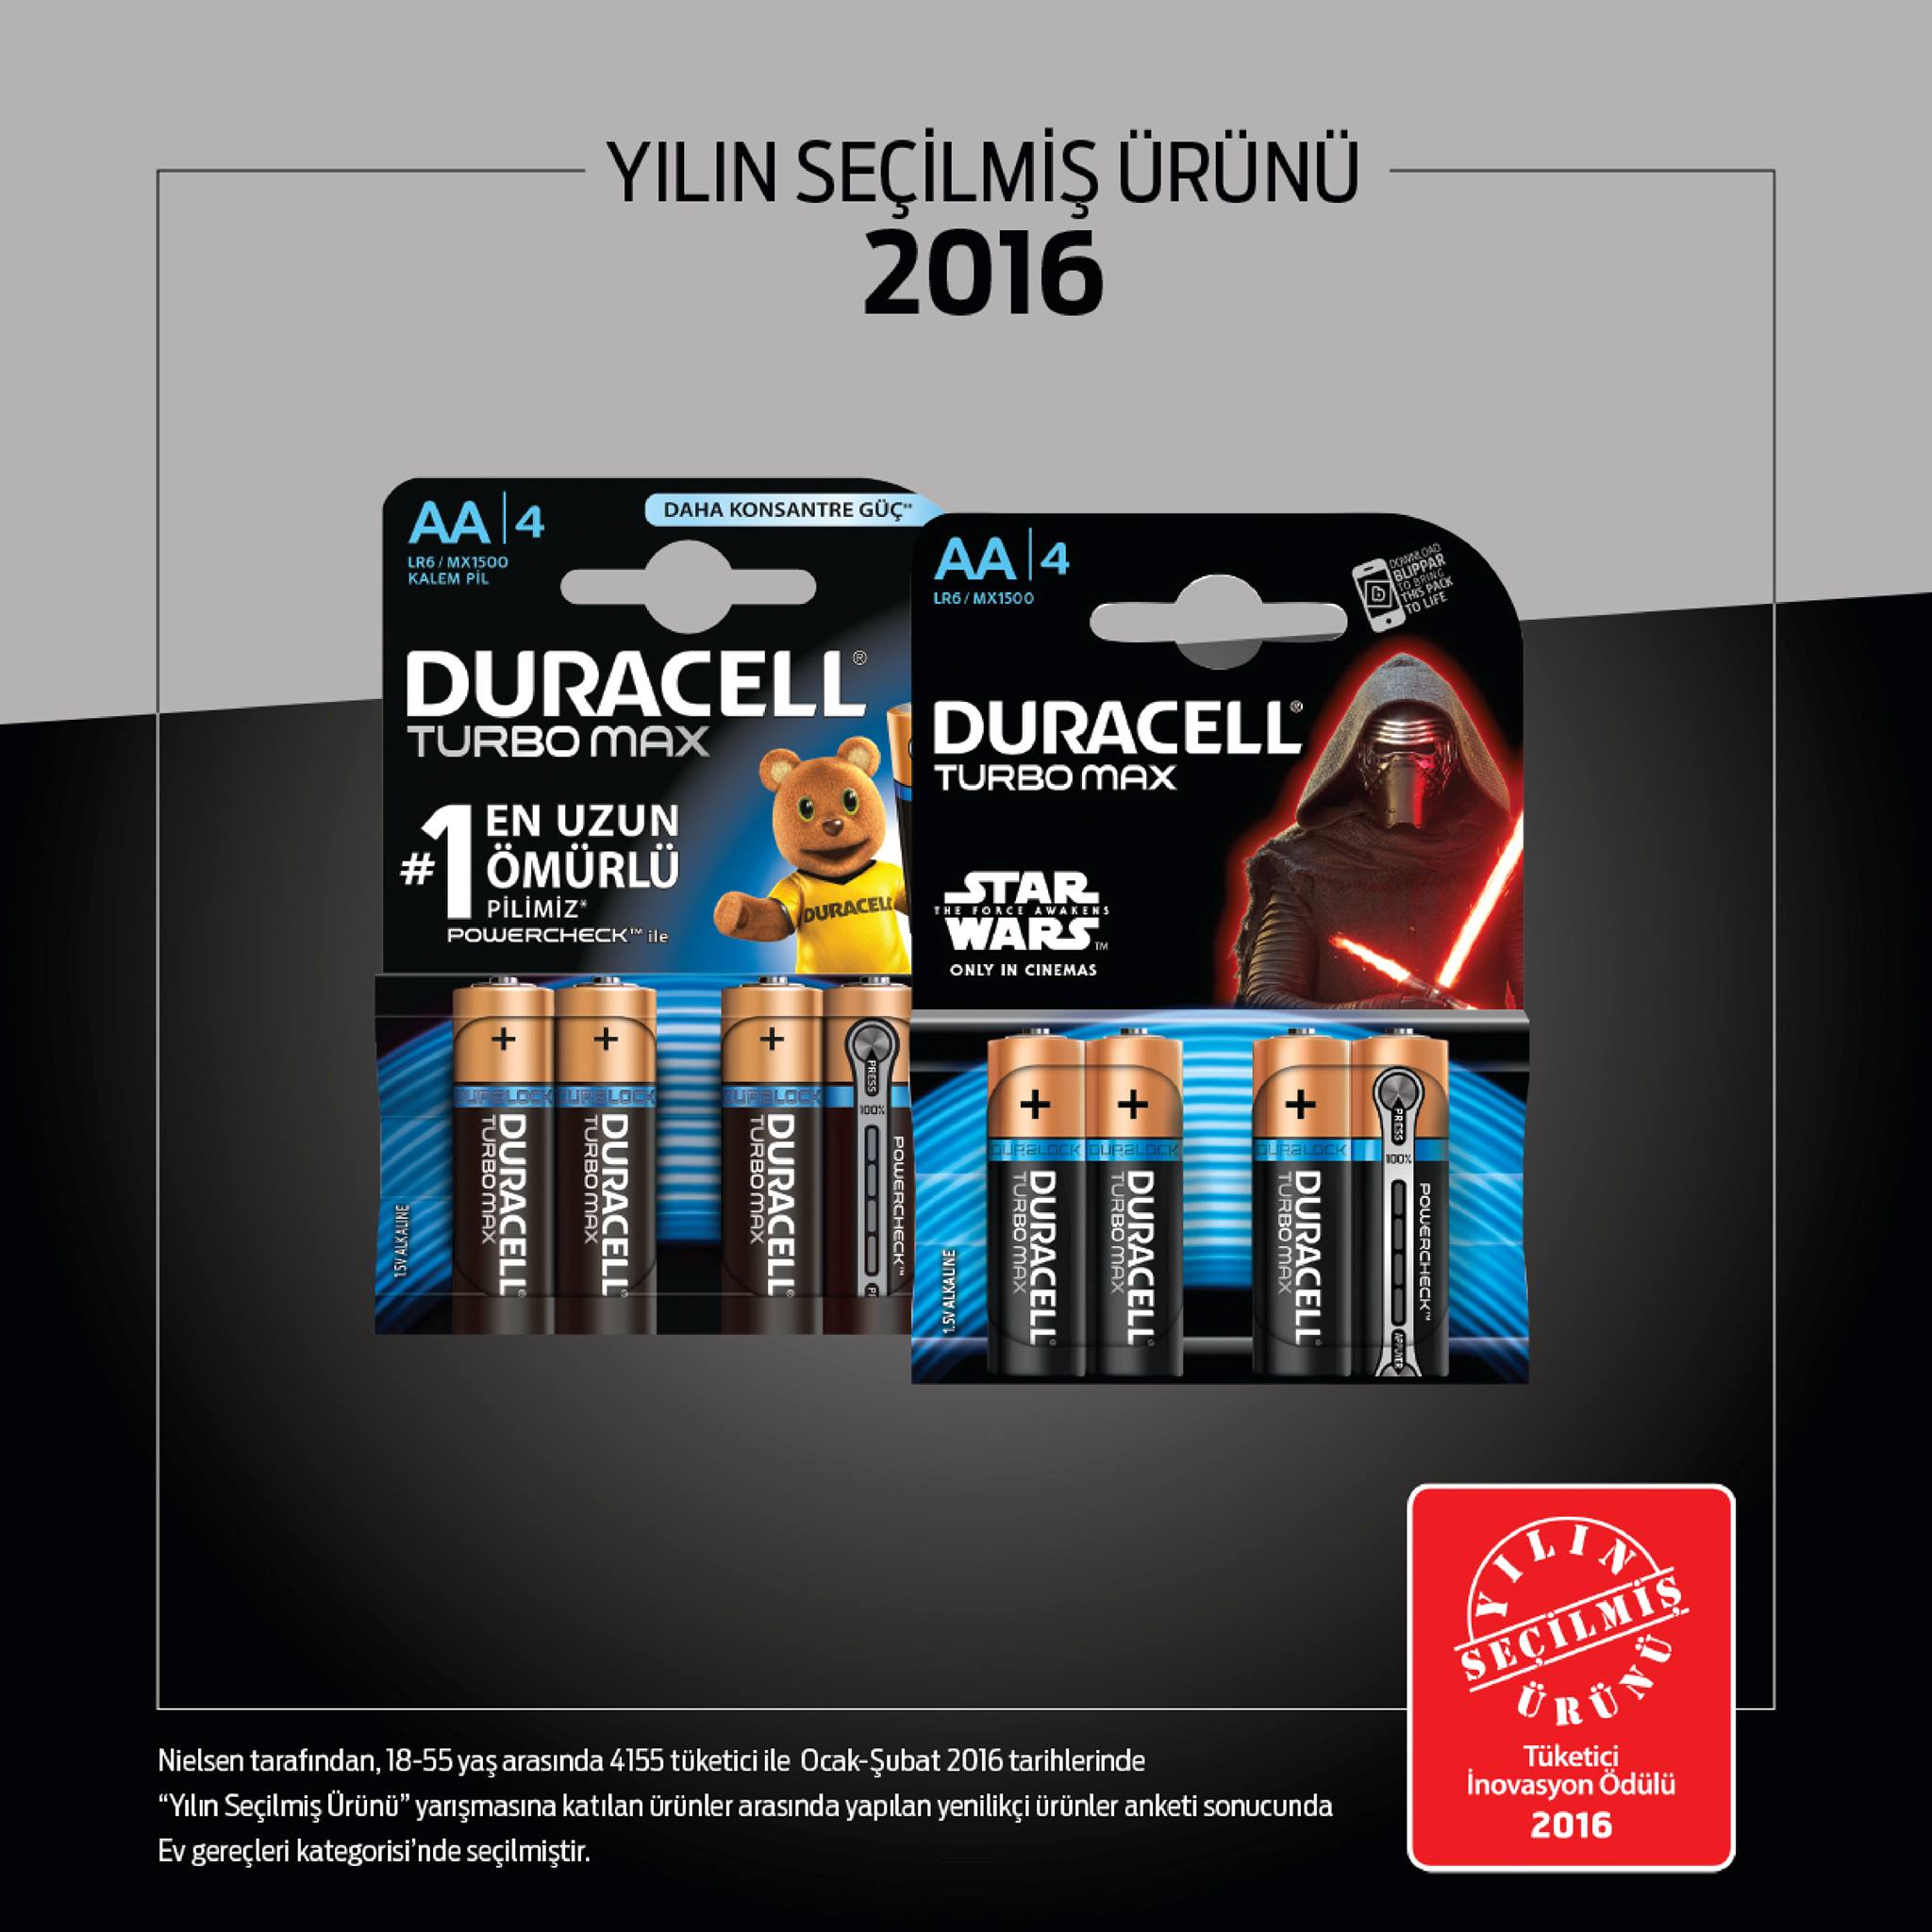 Duracell Turbo Max